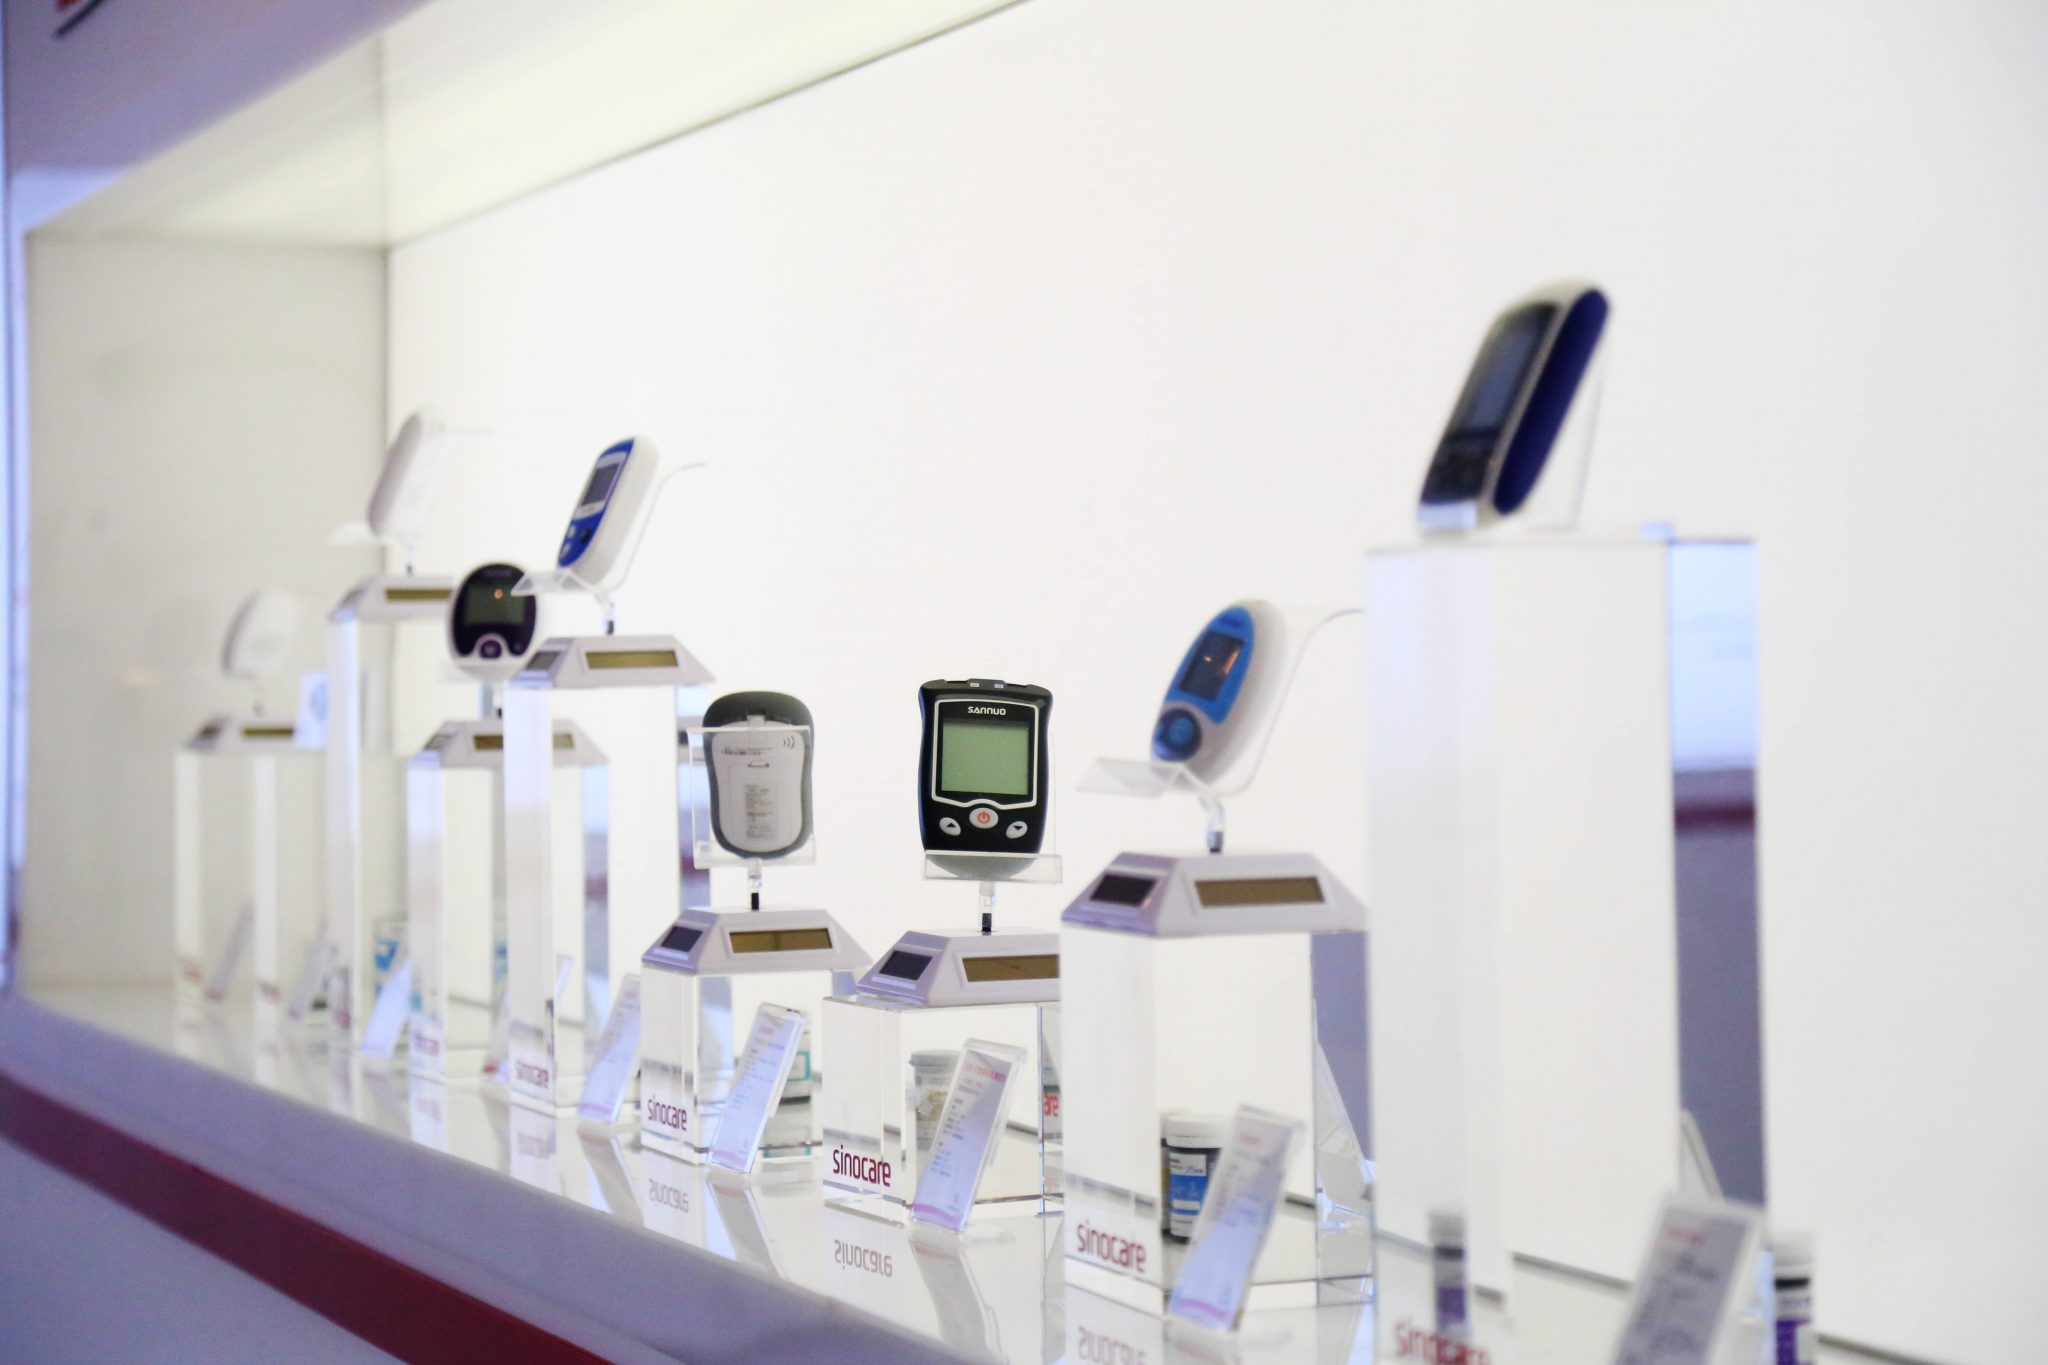 SINOCARE BECAME THE WORLD'S SIXTH LARGEST BLOOD GLUCOSE